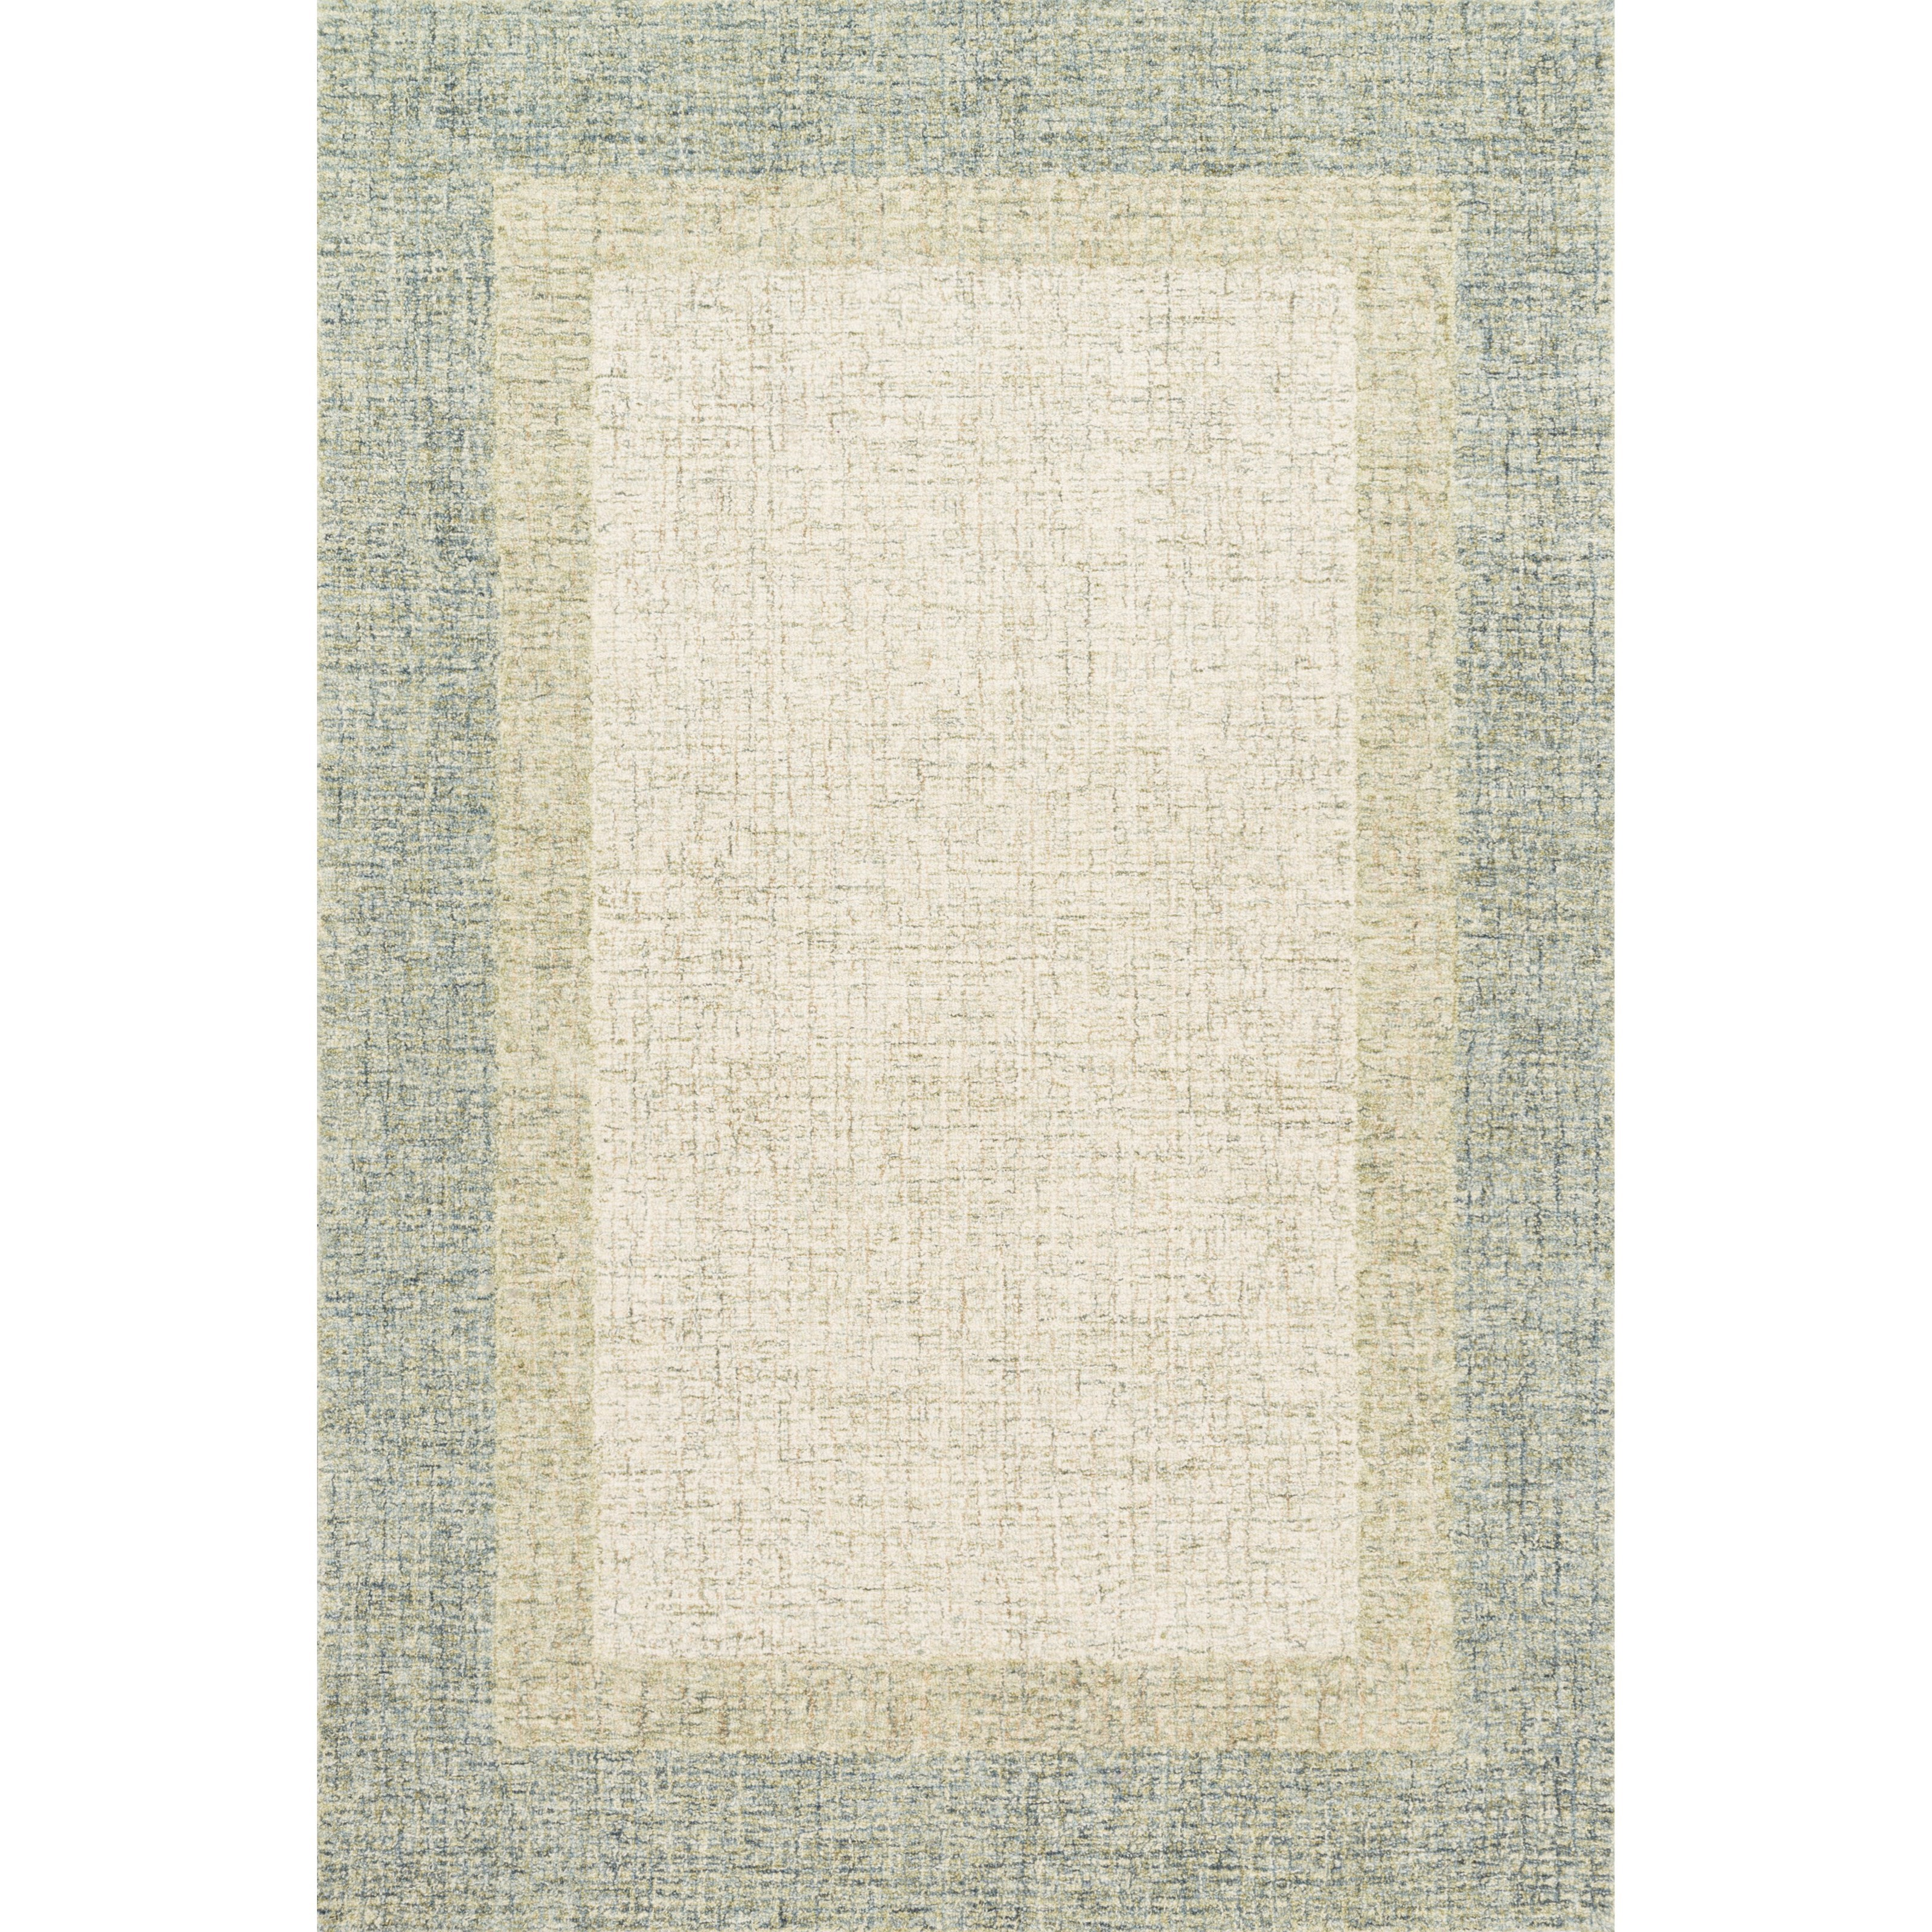 """Rosina 3'6"""" x 5'6"""" Olive Rug by Loloi Rugs at Virginia Furniture Market"""